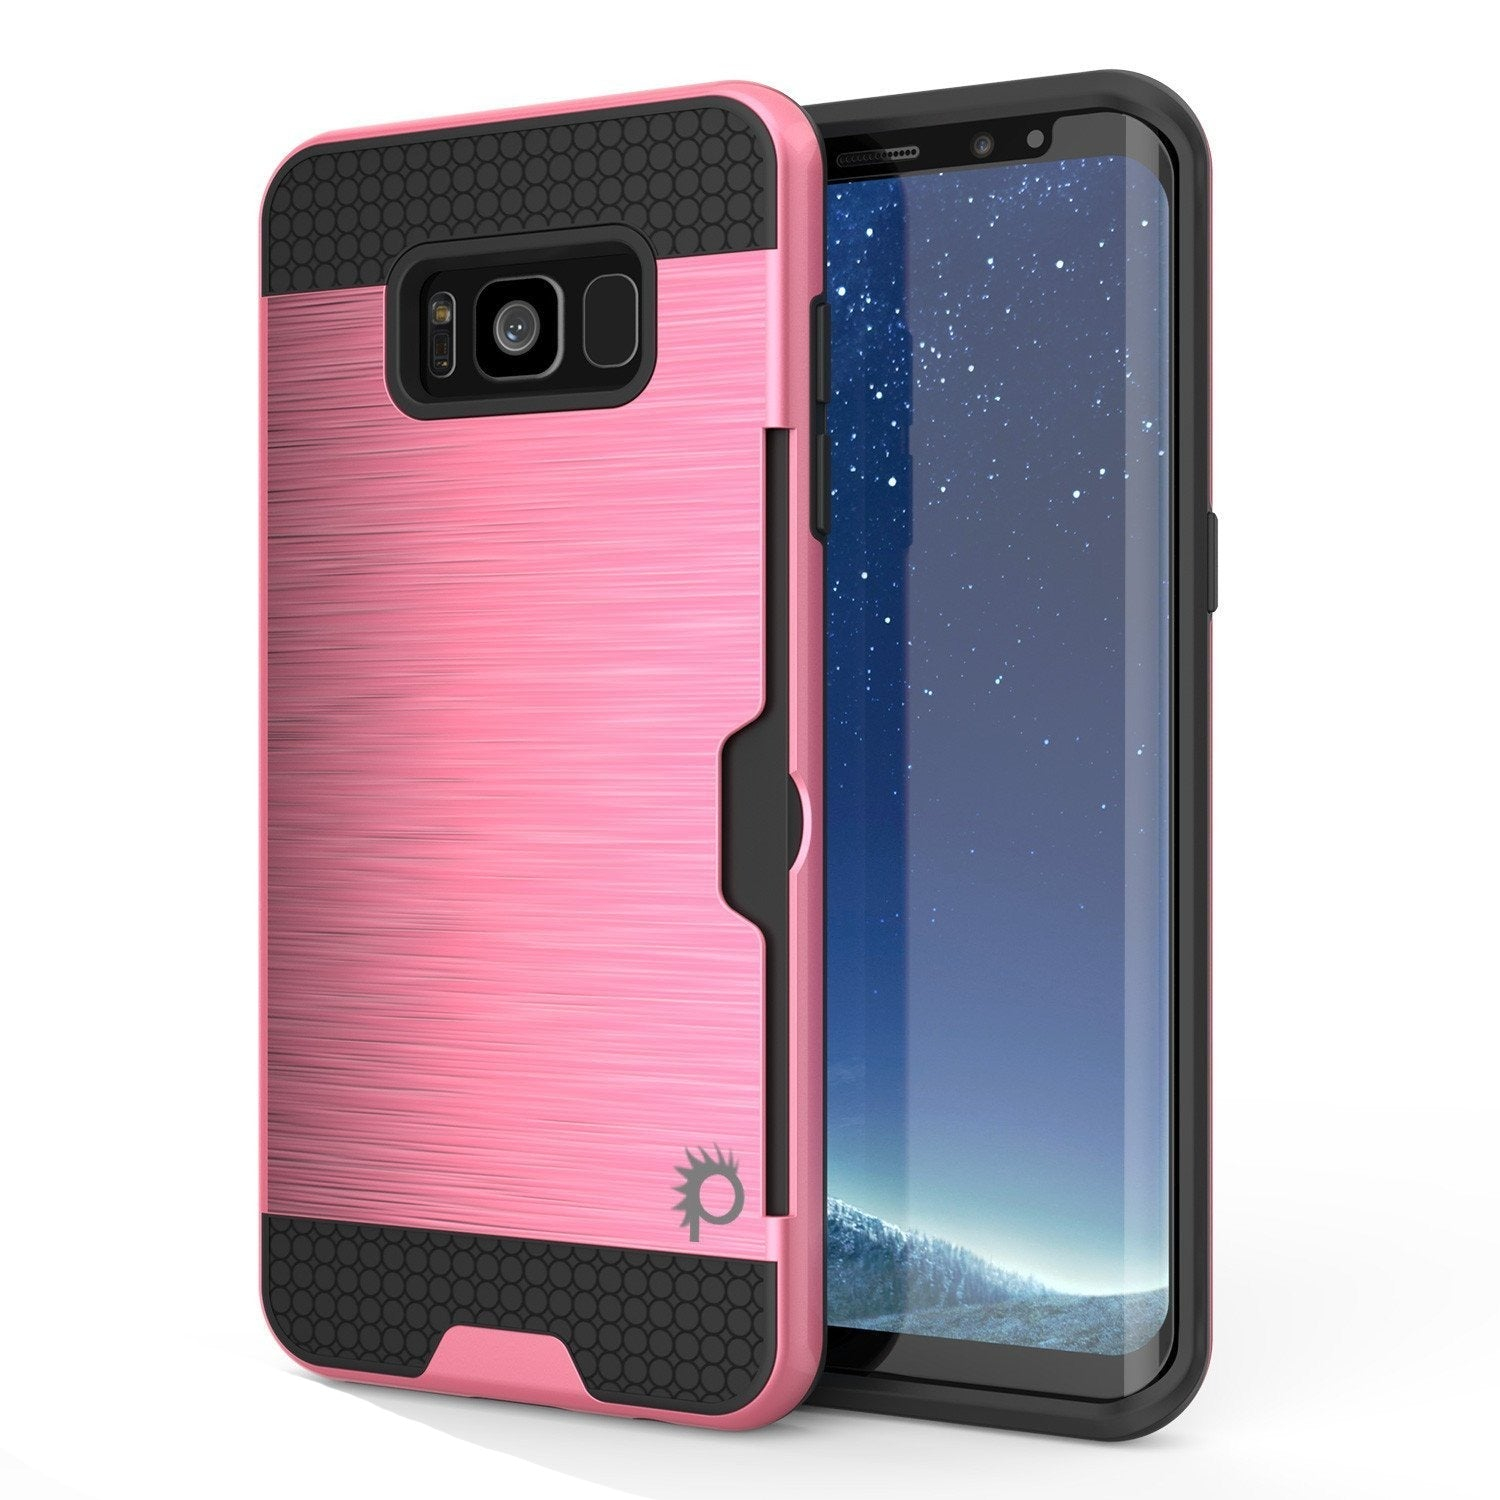 Galaxy S8 Plus Case, PUNKcase [SLOT Series] [Slim Fit] Dual-Layer Armor Cover w/Integrated Anti-Shock System, Credit Card Slot & PunkShield Screen Protector for Samsung Galaxy S8+ [Pink] - PunkCase NZ